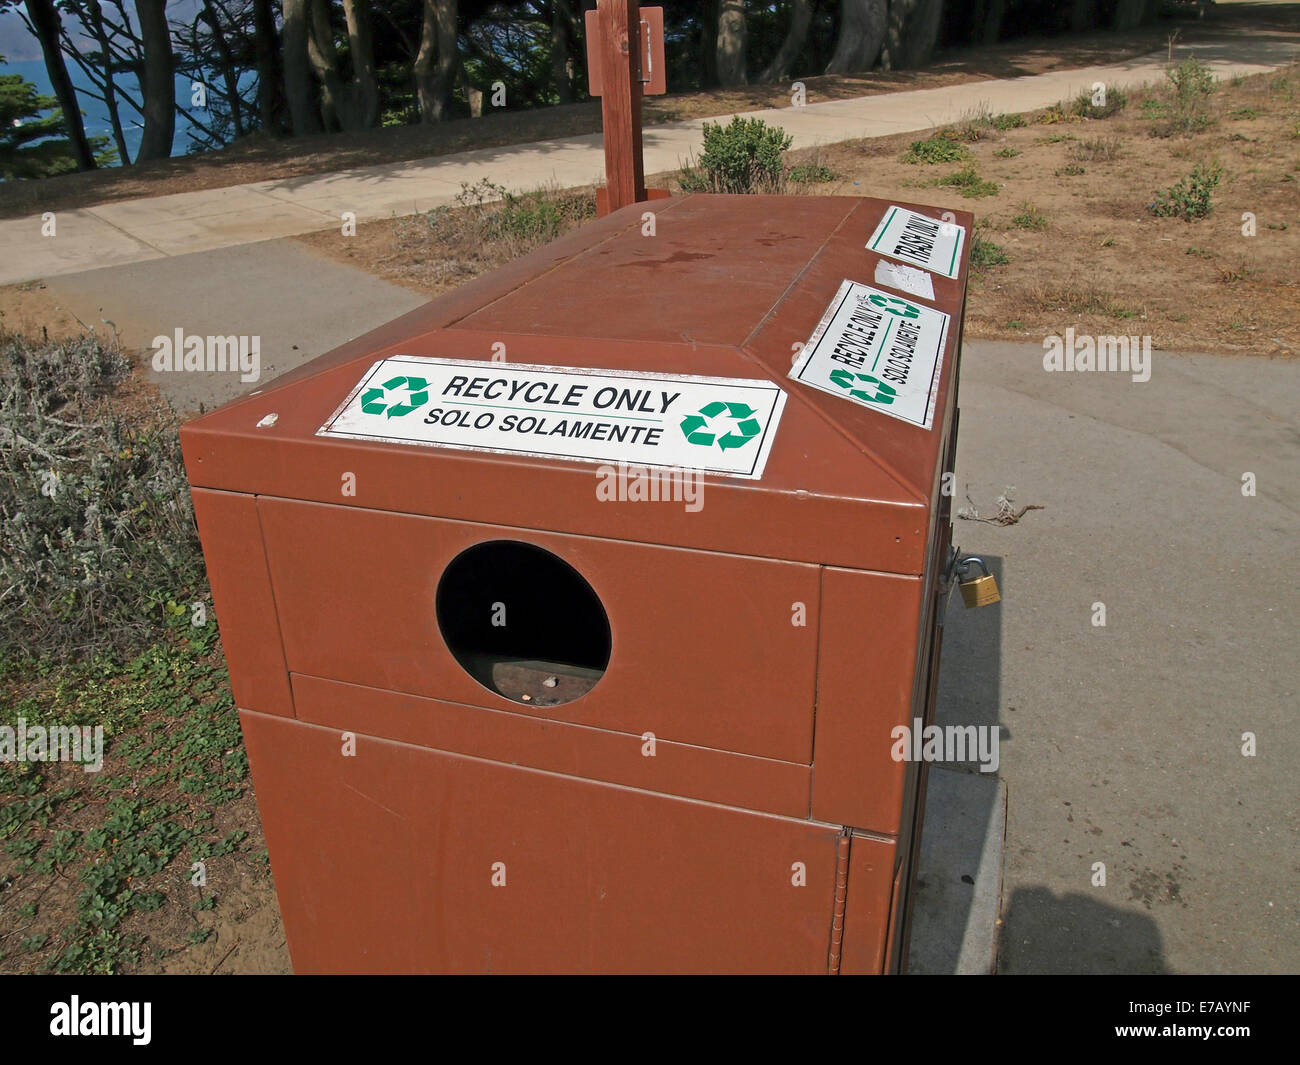 RECYCLE ONLY, SOLO SOLAMENTE, container - Stock Image